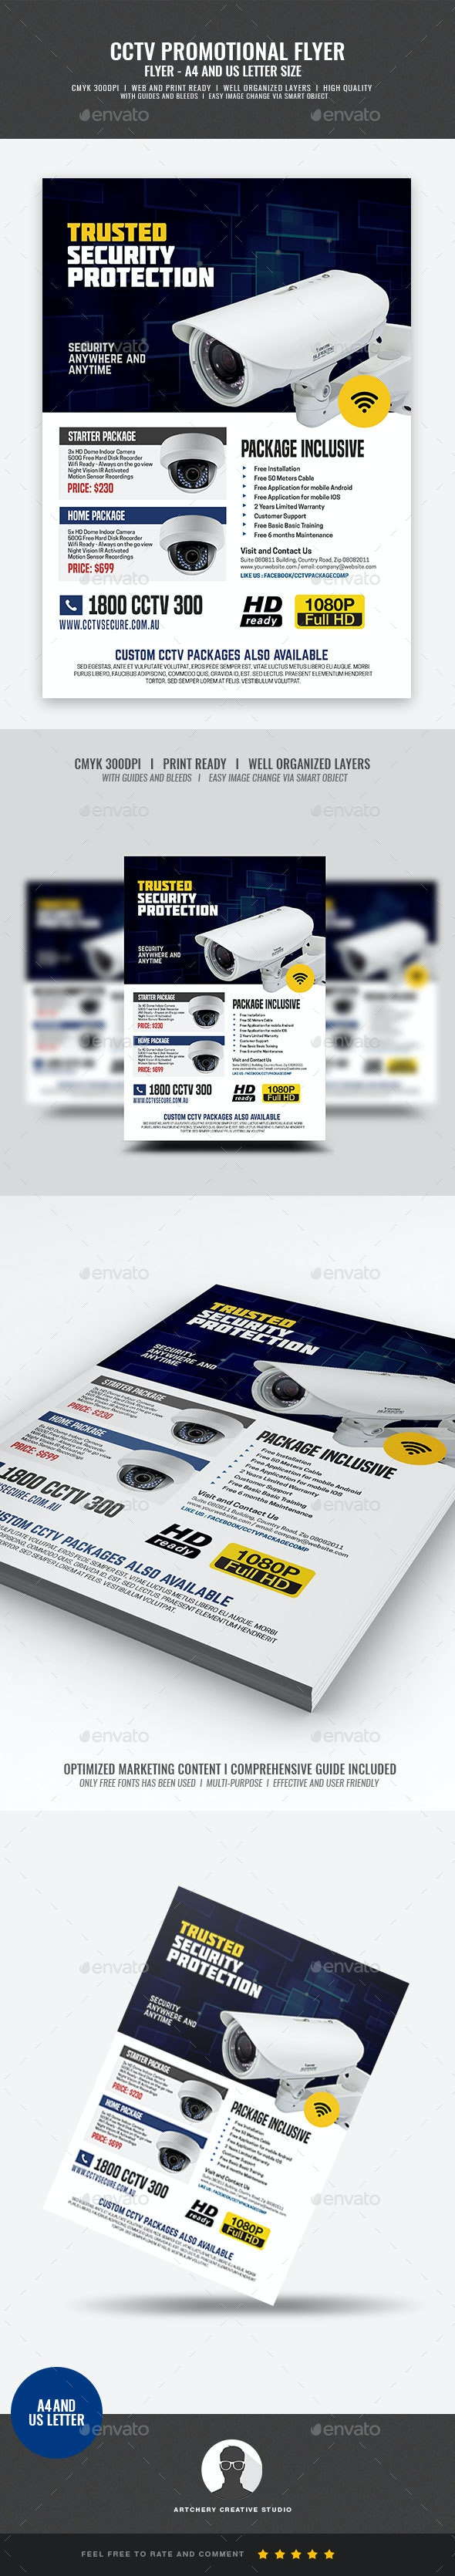 CCTV Shop Promo Flyer - Commerce Flyers